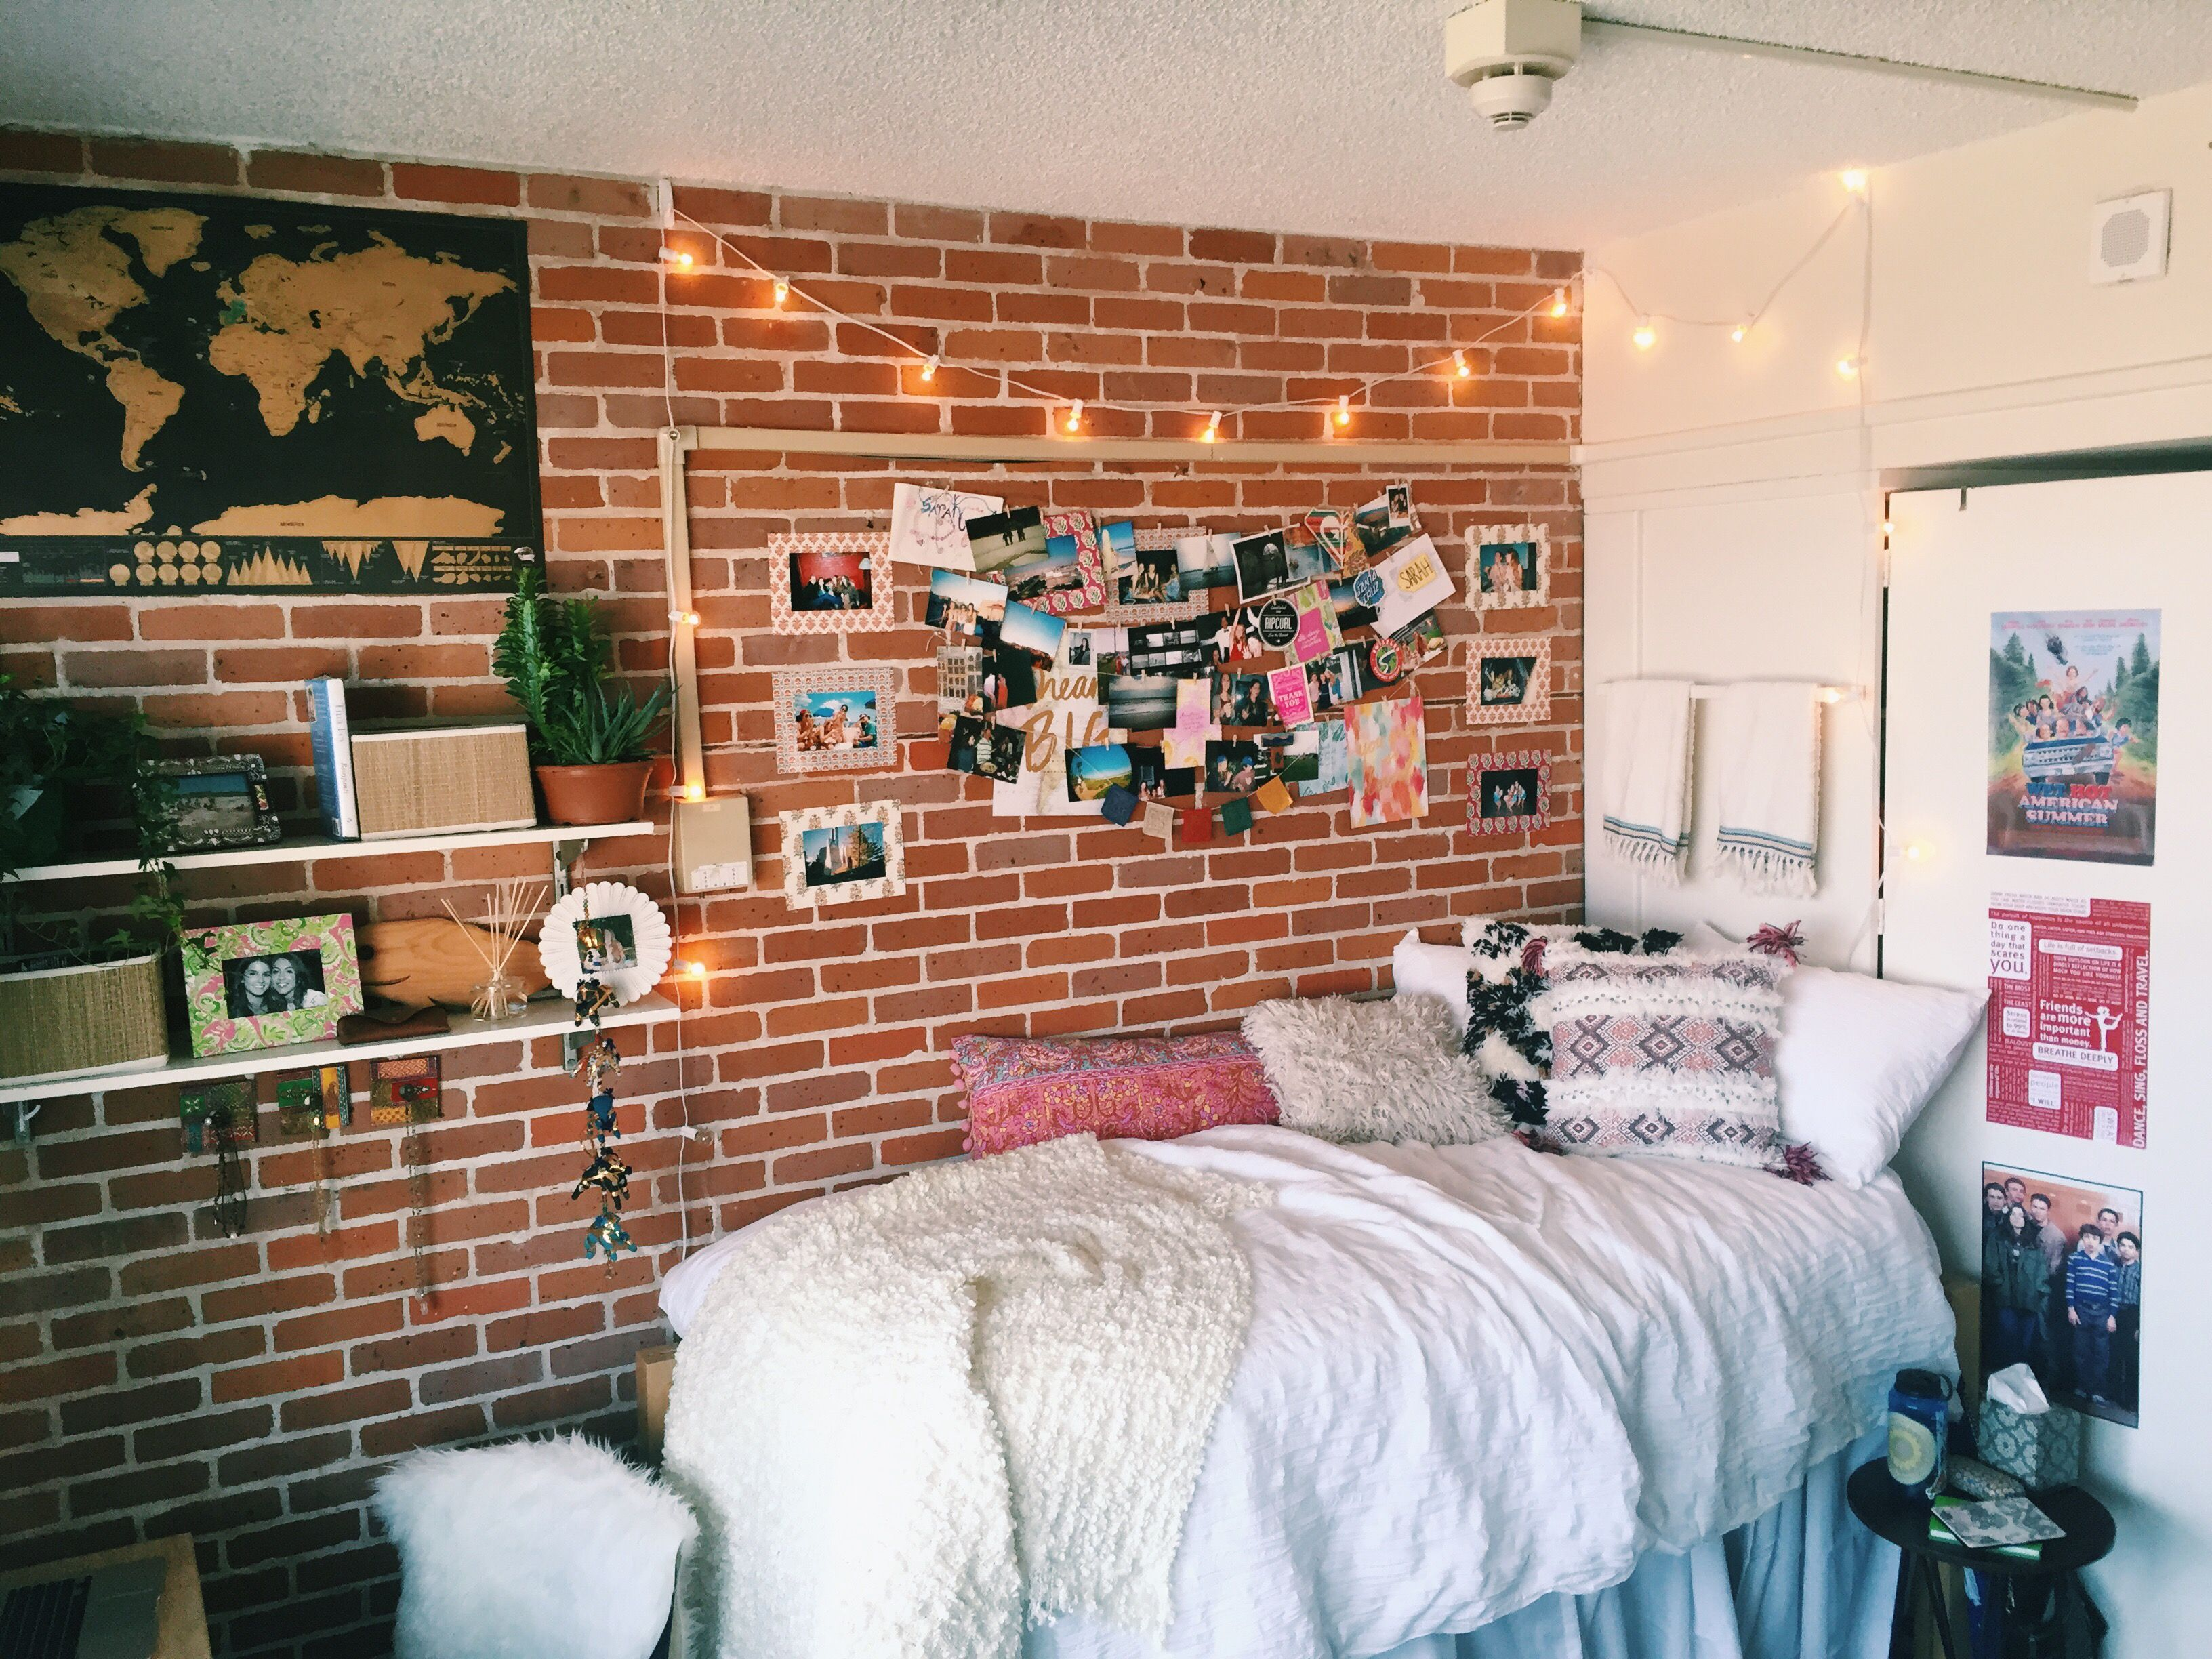 211 best Dorm Inspiration images on Pinterest | Homes, Bed and ...